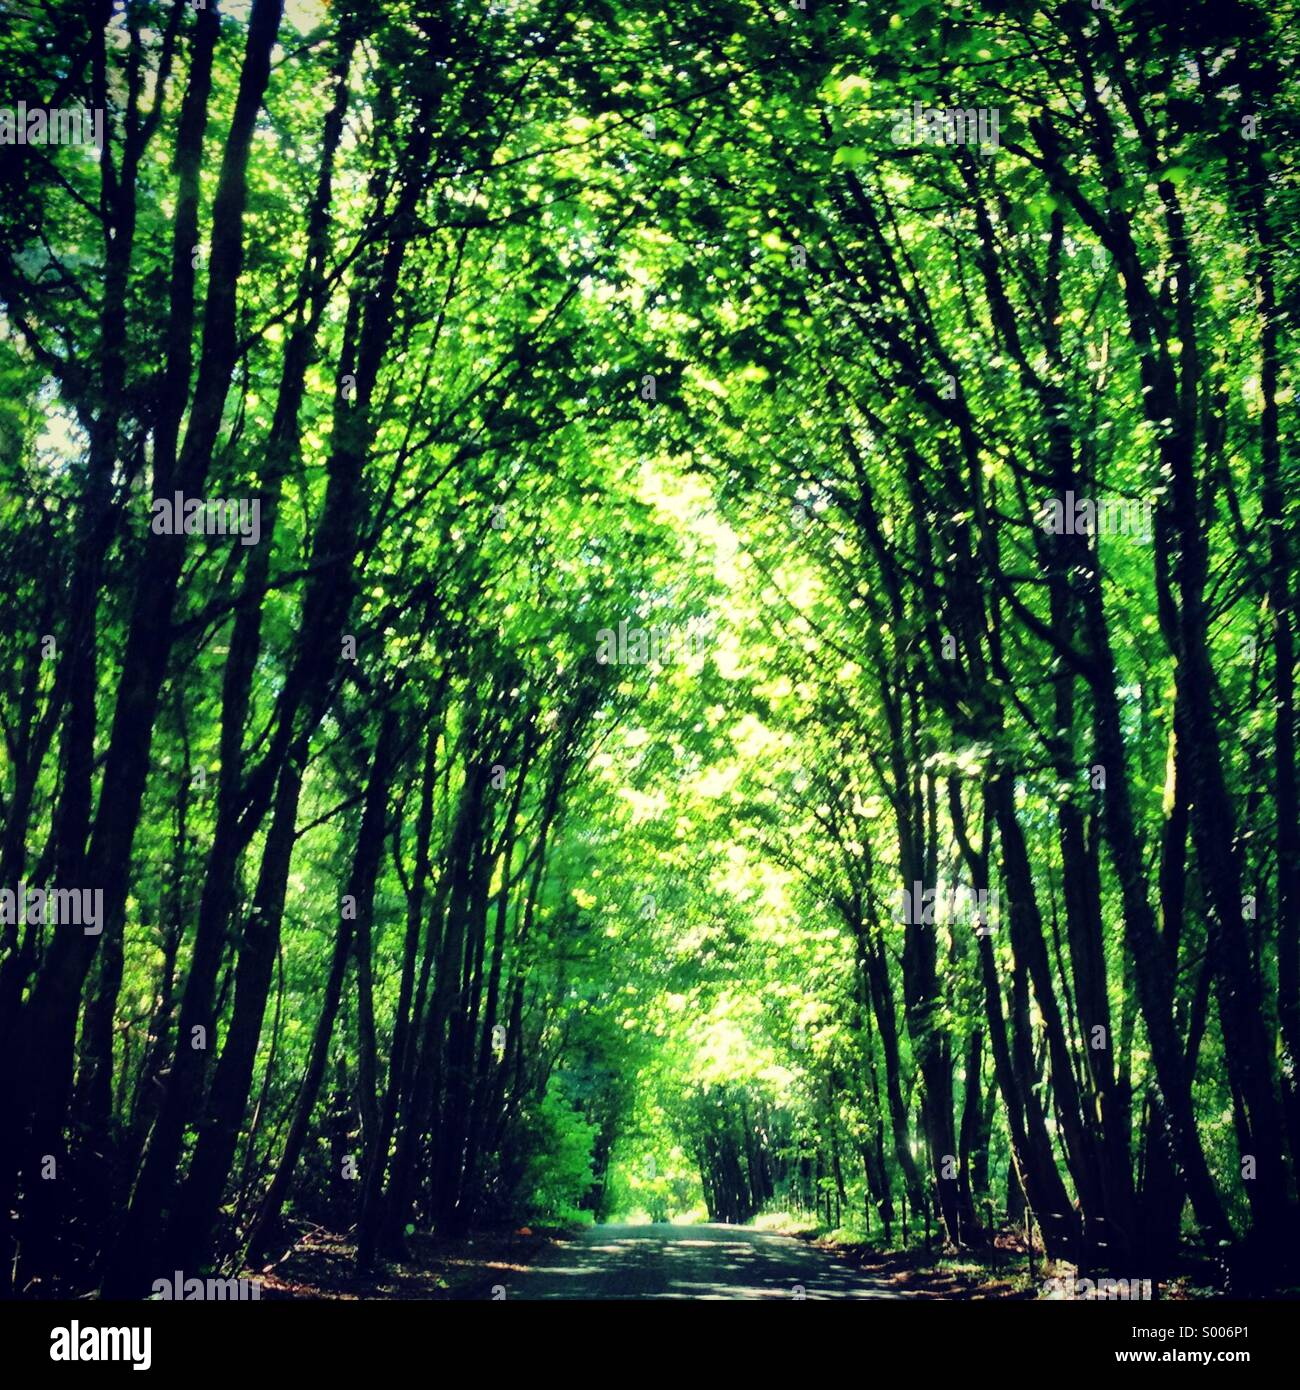 Avenue of trees on Zigzag road. East Melbury, Dorset, England. Late Summer 2013. - Stock Image